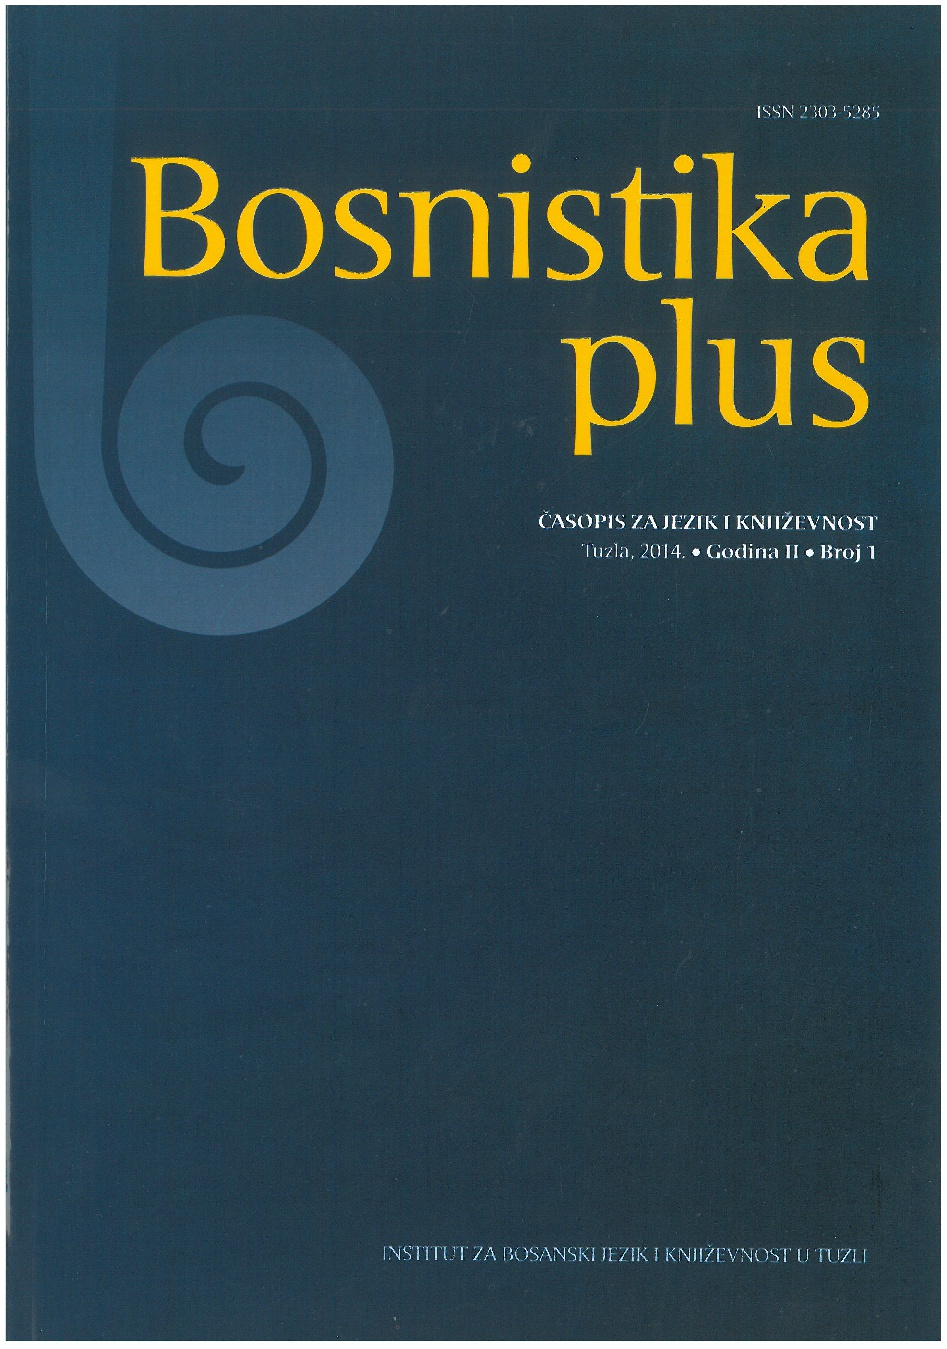 Distribution of Infinitive and Present Tense with Conjunction DA Completing Modal and Phase Verbs in Administrative and Legal Styles in Bosnian Language Cover Image